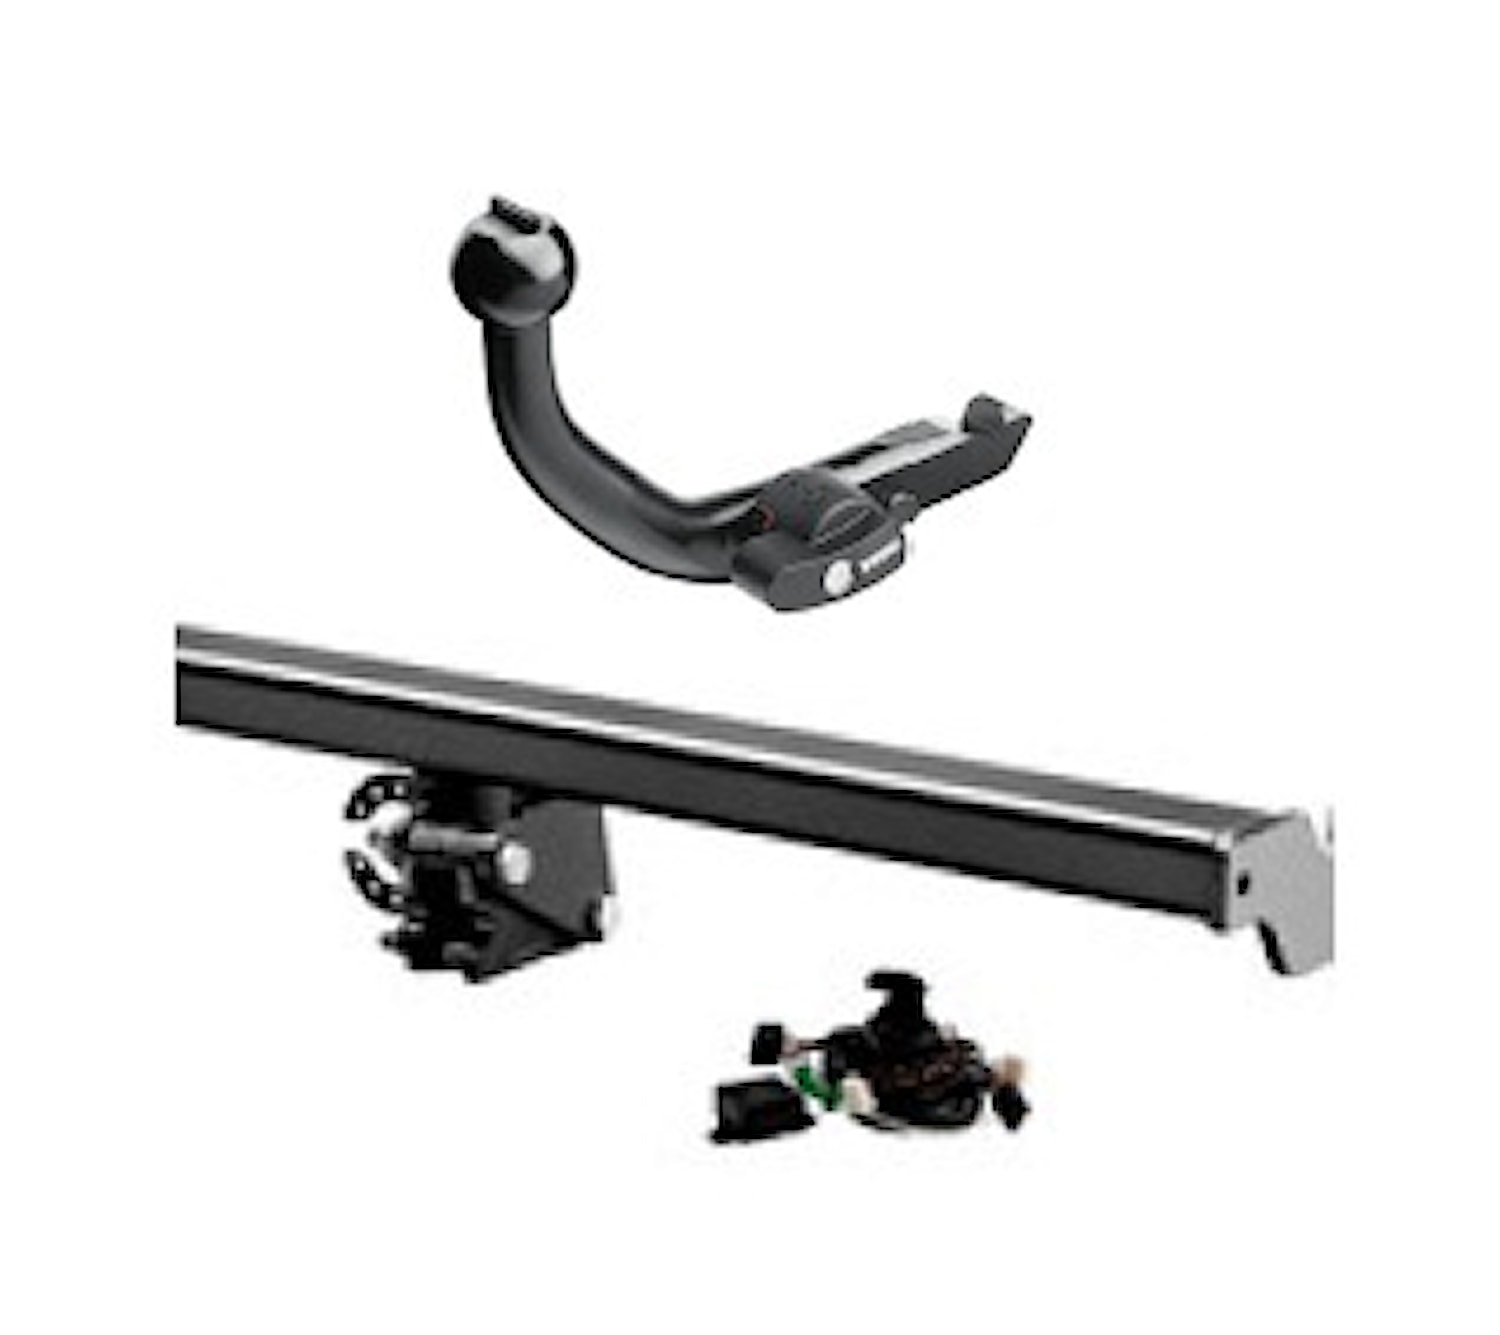 Thule RMC connector kit